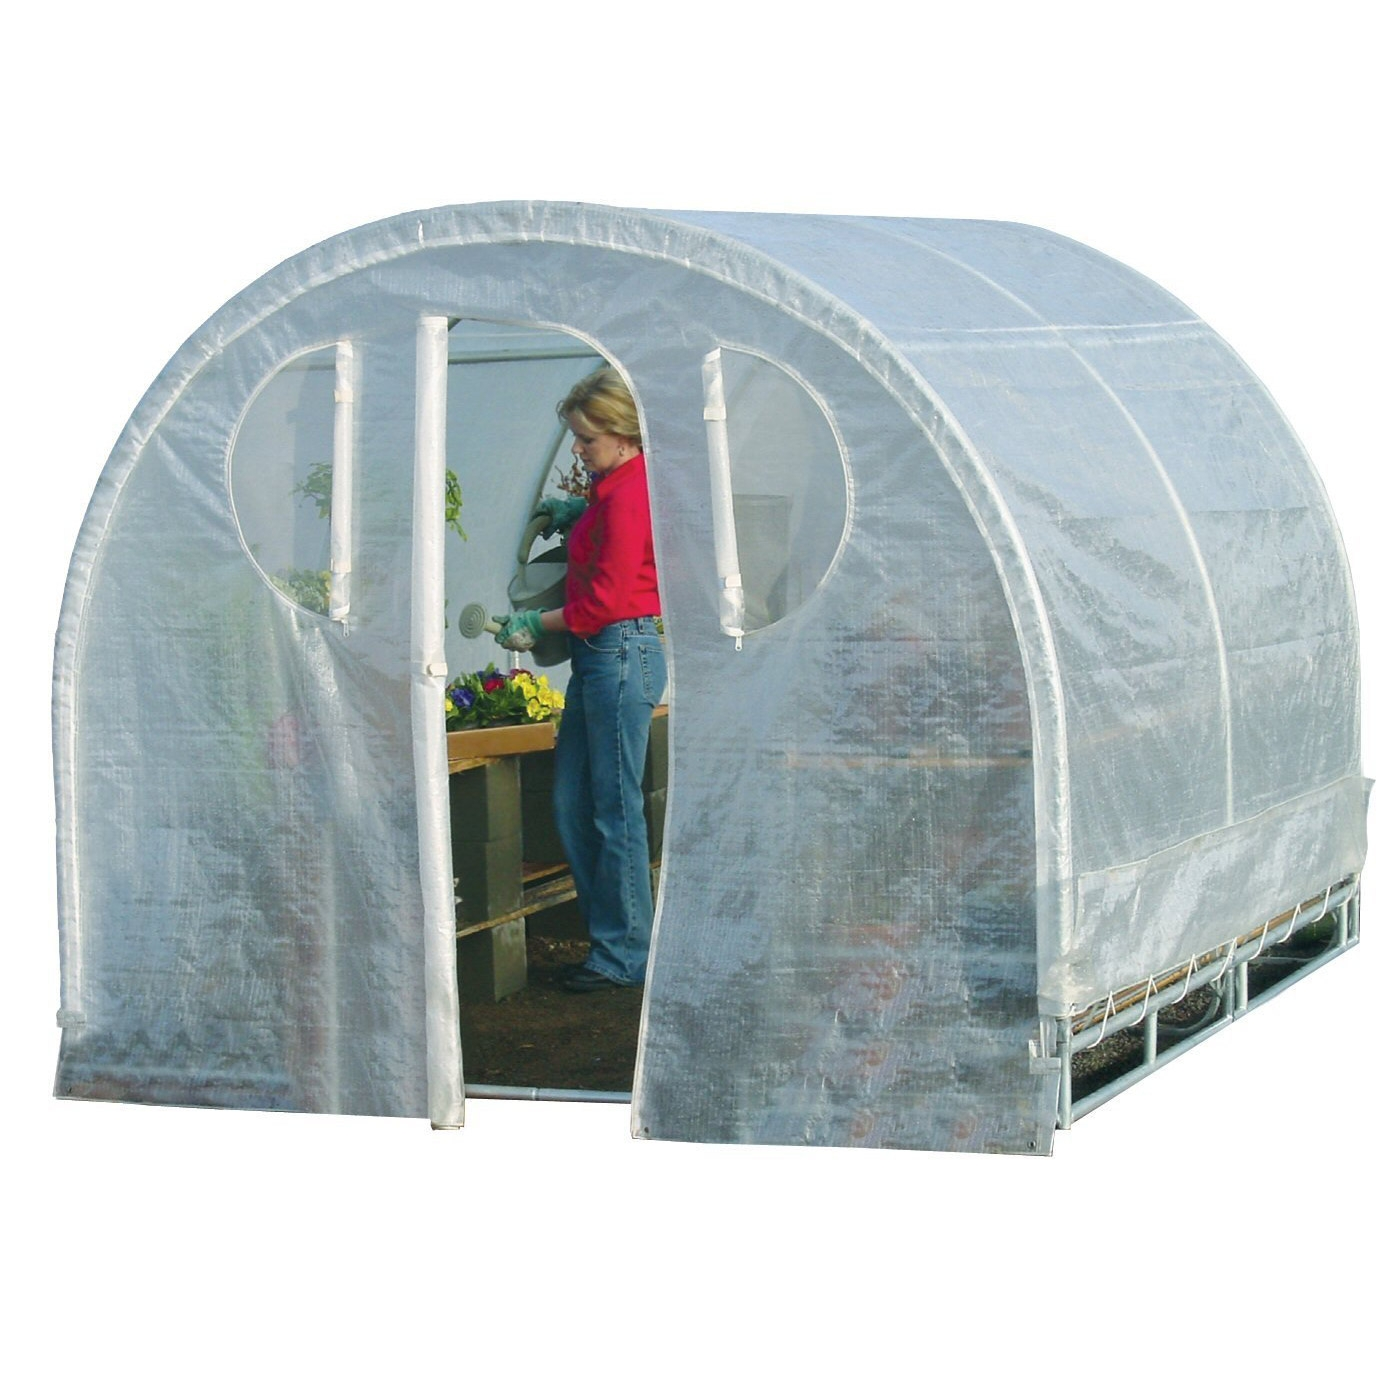 Polytunnel Hoop House Style Greenhouse (8' x 8'), PTHSG8X8 :  Designed as the highest quality, most compact, space saving greenhouse packaged in a retail box. This Polytunnel hoop-house cold-frame style High-Tunnel greenhouse features a space saver design.  The modern greenhouse offers all of the same quality, workmanship, and results as the Commercial Series Green House while appealing to beginner, novice, and professional growers alike. Each Deck and Patio greenhouse is constructed from 100 percent commercial grade galvanized steel frame. Featuring quick connect steel frame and steel frame connectors. It includes a rugged all weather triple layer Polyurethane, cover, back panel, and front entry. Rust resistant galvanized steel. The frame components and frame connectors are galvanized after being welded. This Greenhouse provides maximum protection, growth, and reliability by using a complete three piece all growth fabric construction with unit-body cover, solid connected back panel, and solid connected front entry – allowing for easy access and maintenance of plants, vegetables and herbs. It also utilizes Smart Vent – technology controlling airflow from the base of the unit and the ends of the unit with special zip out Velcro held screened vented windows. In addition the triple ridge reinforced roof structure not only acts as a weather guardian protecting against severe and inclement weather but also allows growing enthusiasts to hang their full size basket plants from the roof of the green house.